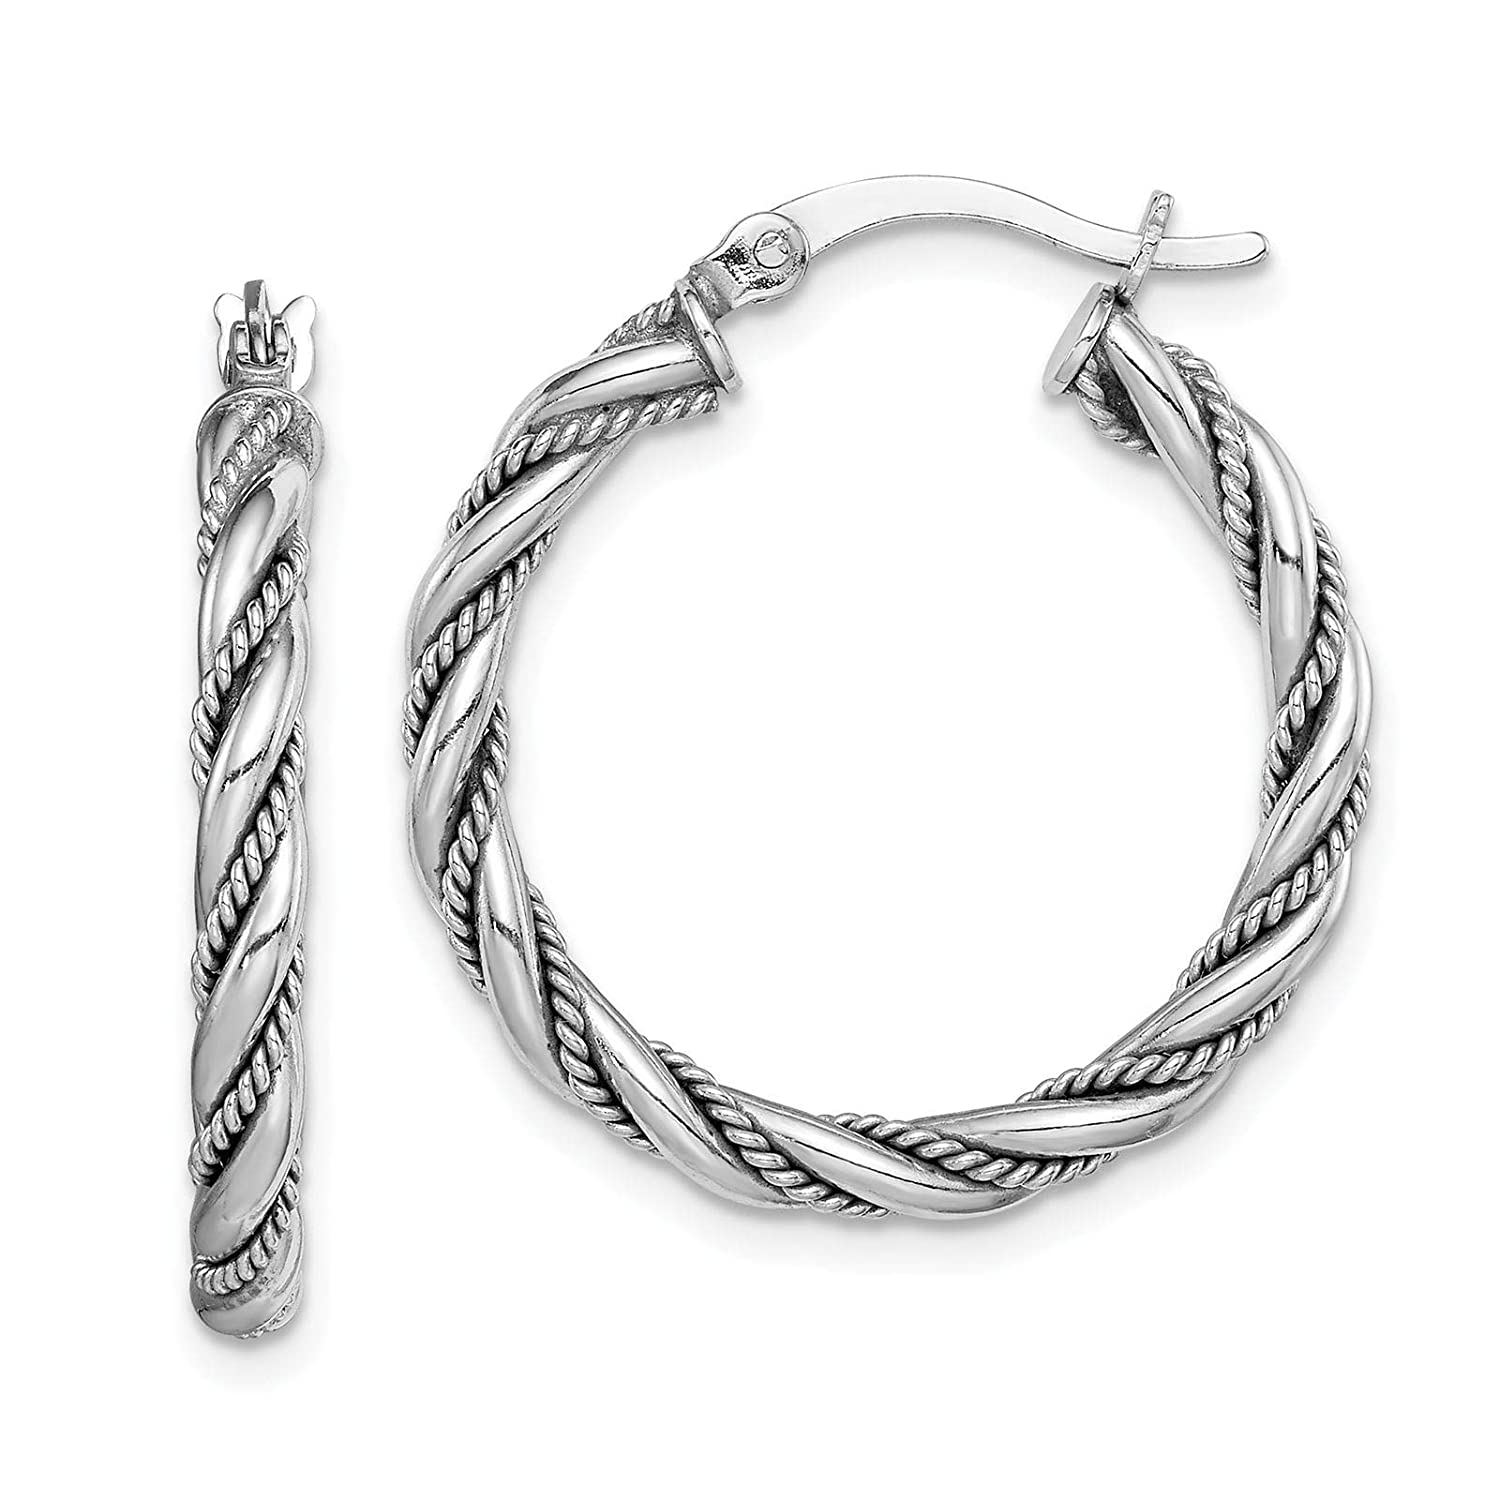 925 Sterling Silver Rhodium-plated Polished /& Textured Twisted Hoop Earrings